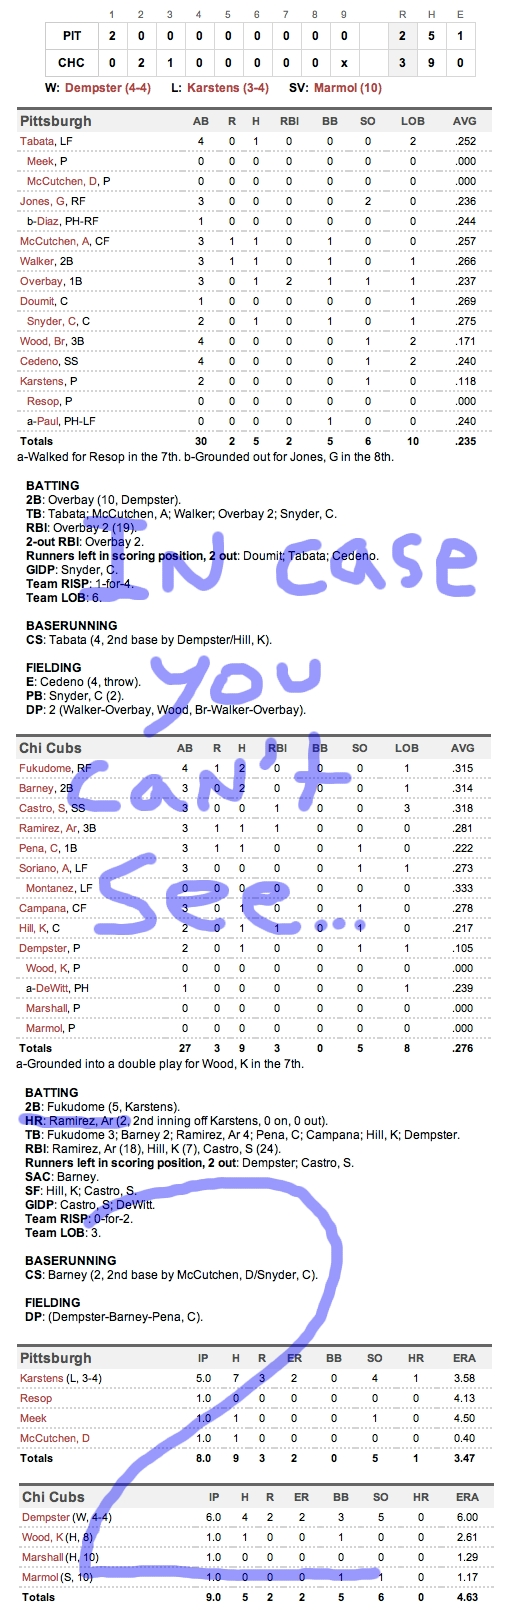 Enhanced Box Score: Pirates 2, Cubs 3 – May 29, 2011